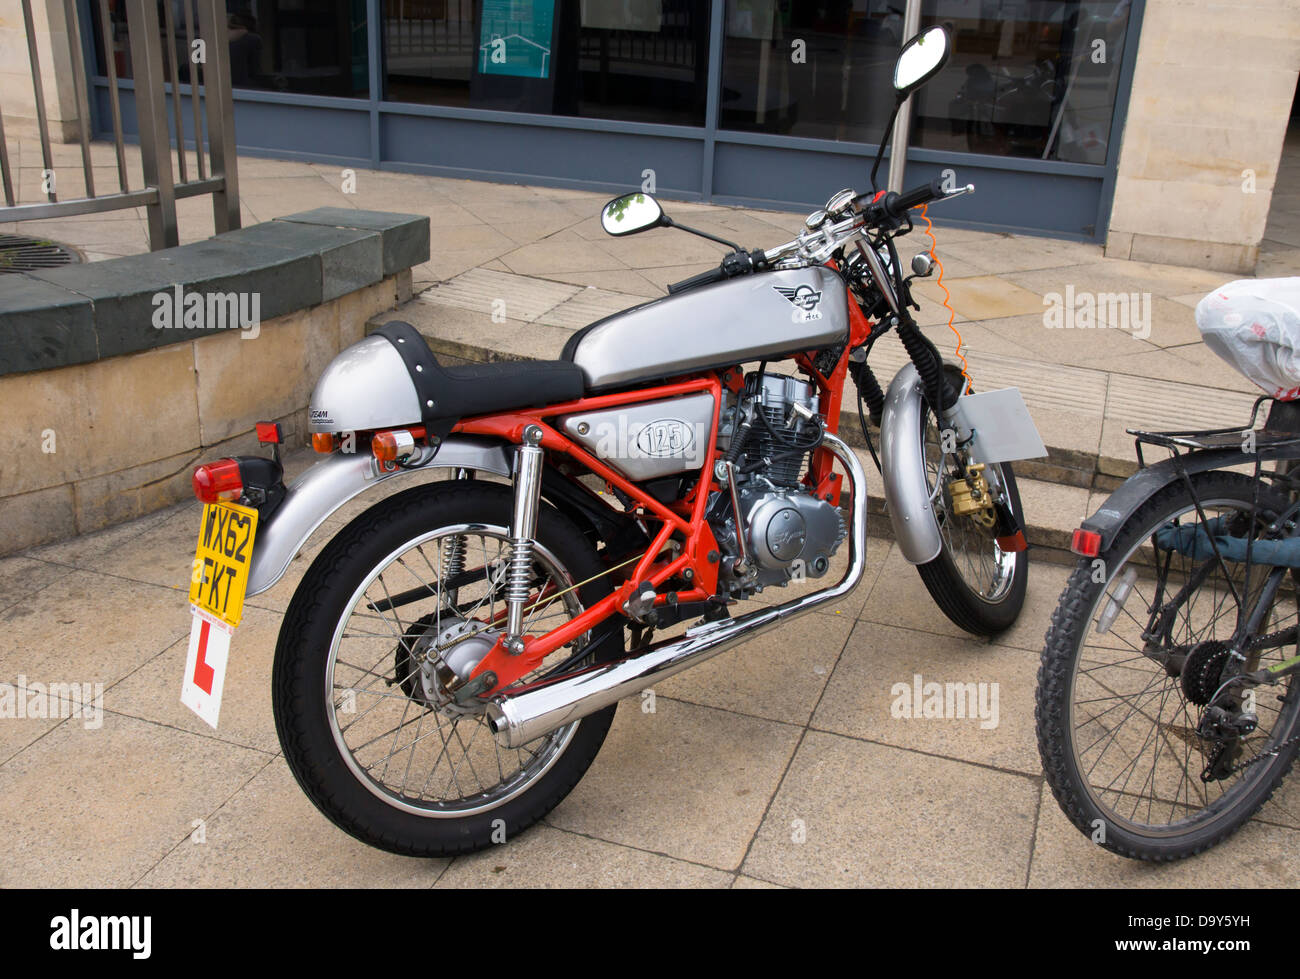 A 125cc Motor Bike In The Style Of A 1960 S Cafe Racer A Sky Team Stock Photo Alamy